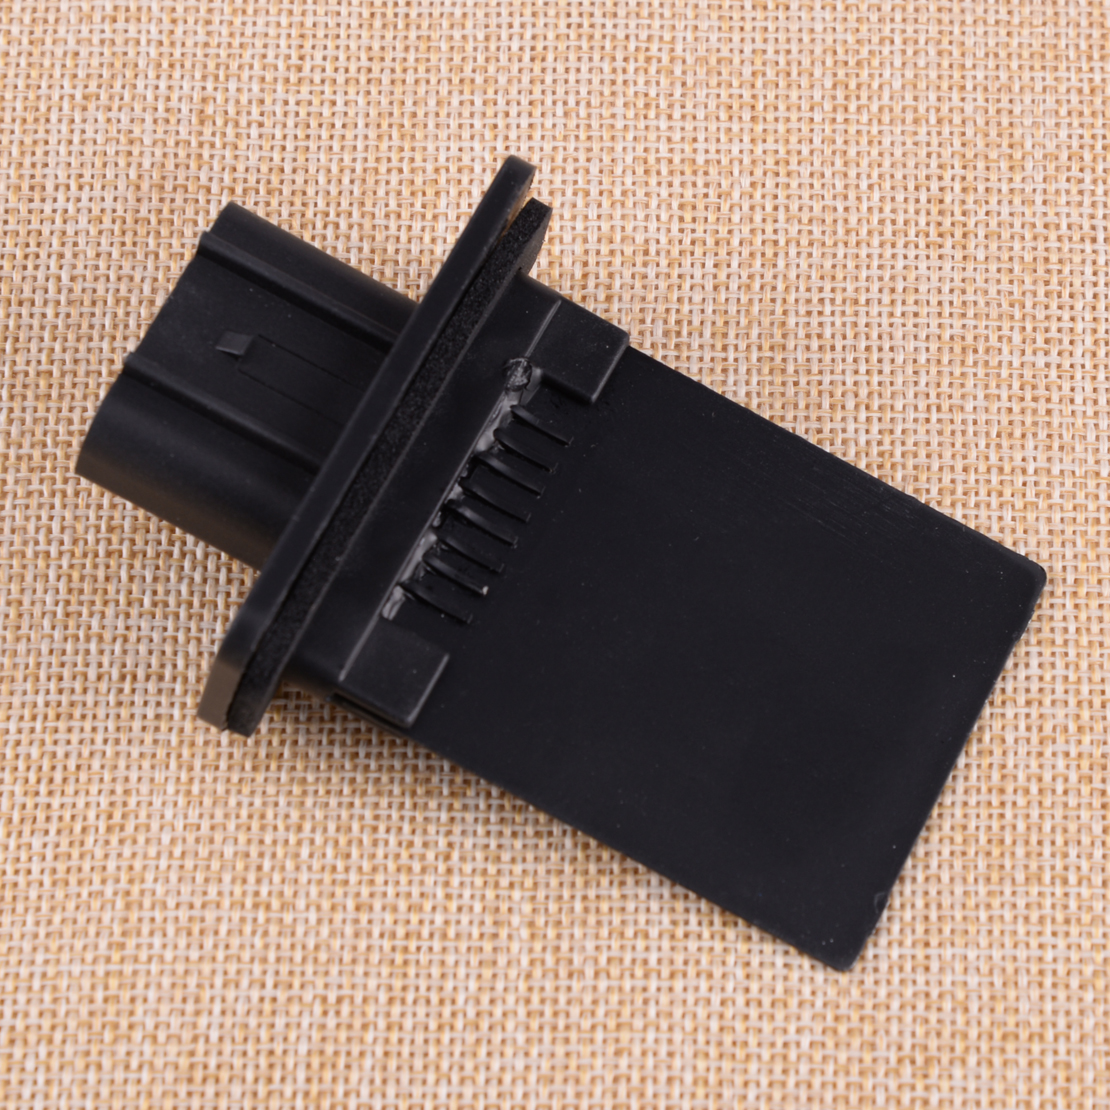 beler HVAC Front Heater Blower Motor Resistor 973-444 YH-1715 Fit for Ford Escape Expedition F-150 Fiesta